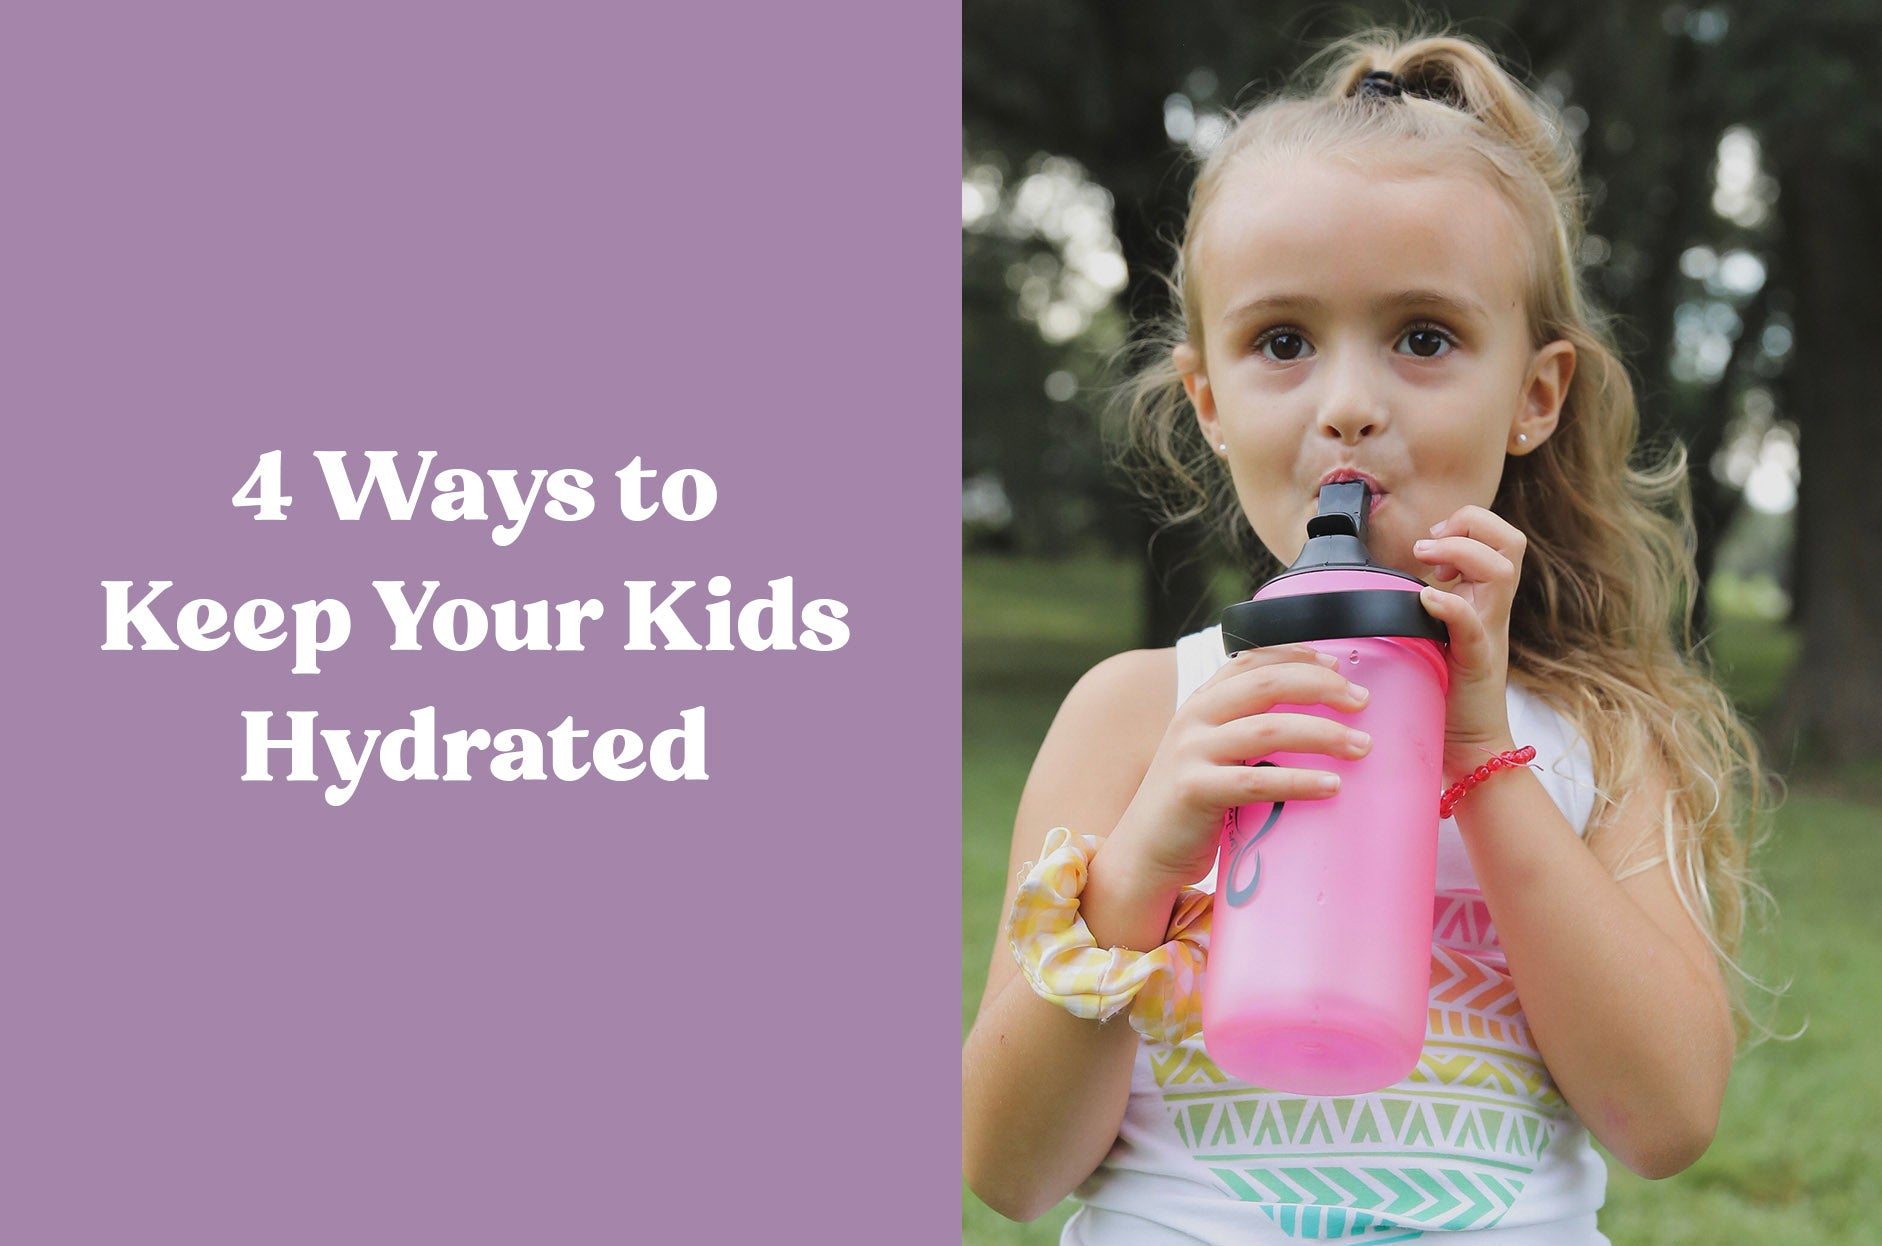 4 Ways to Keep Your Kids Hydrated